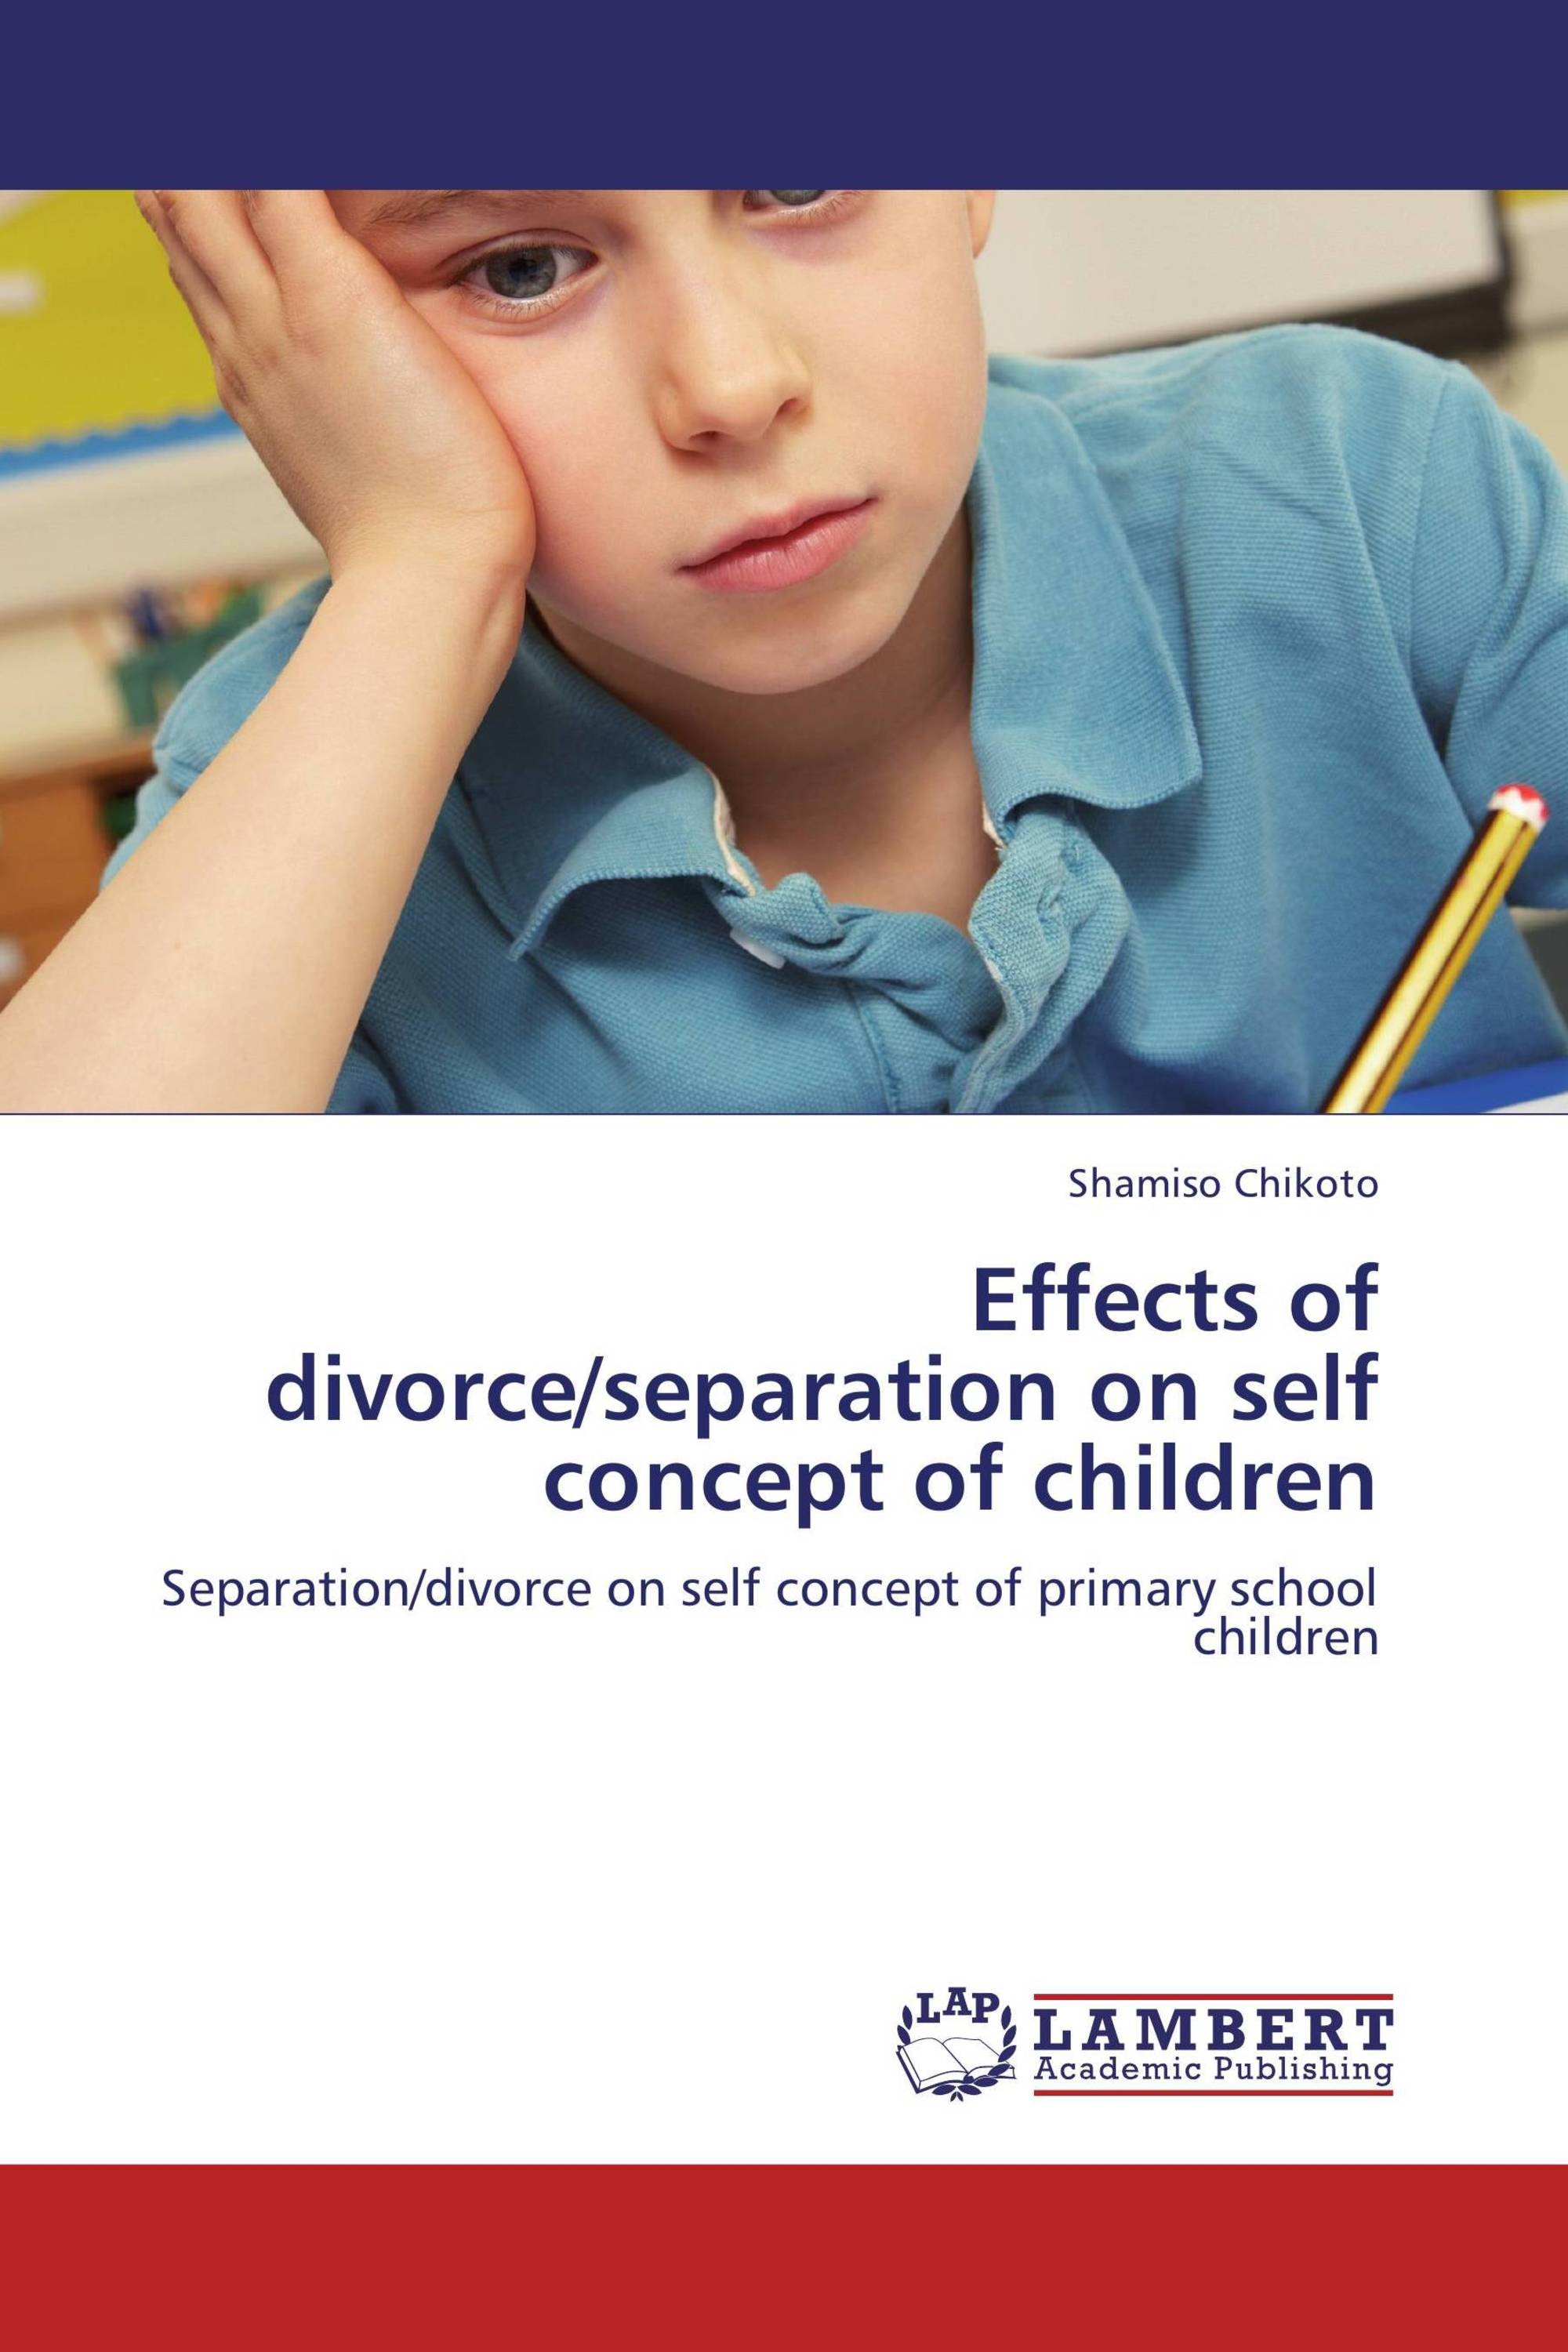 an analysis of the effects of the divorce process on children